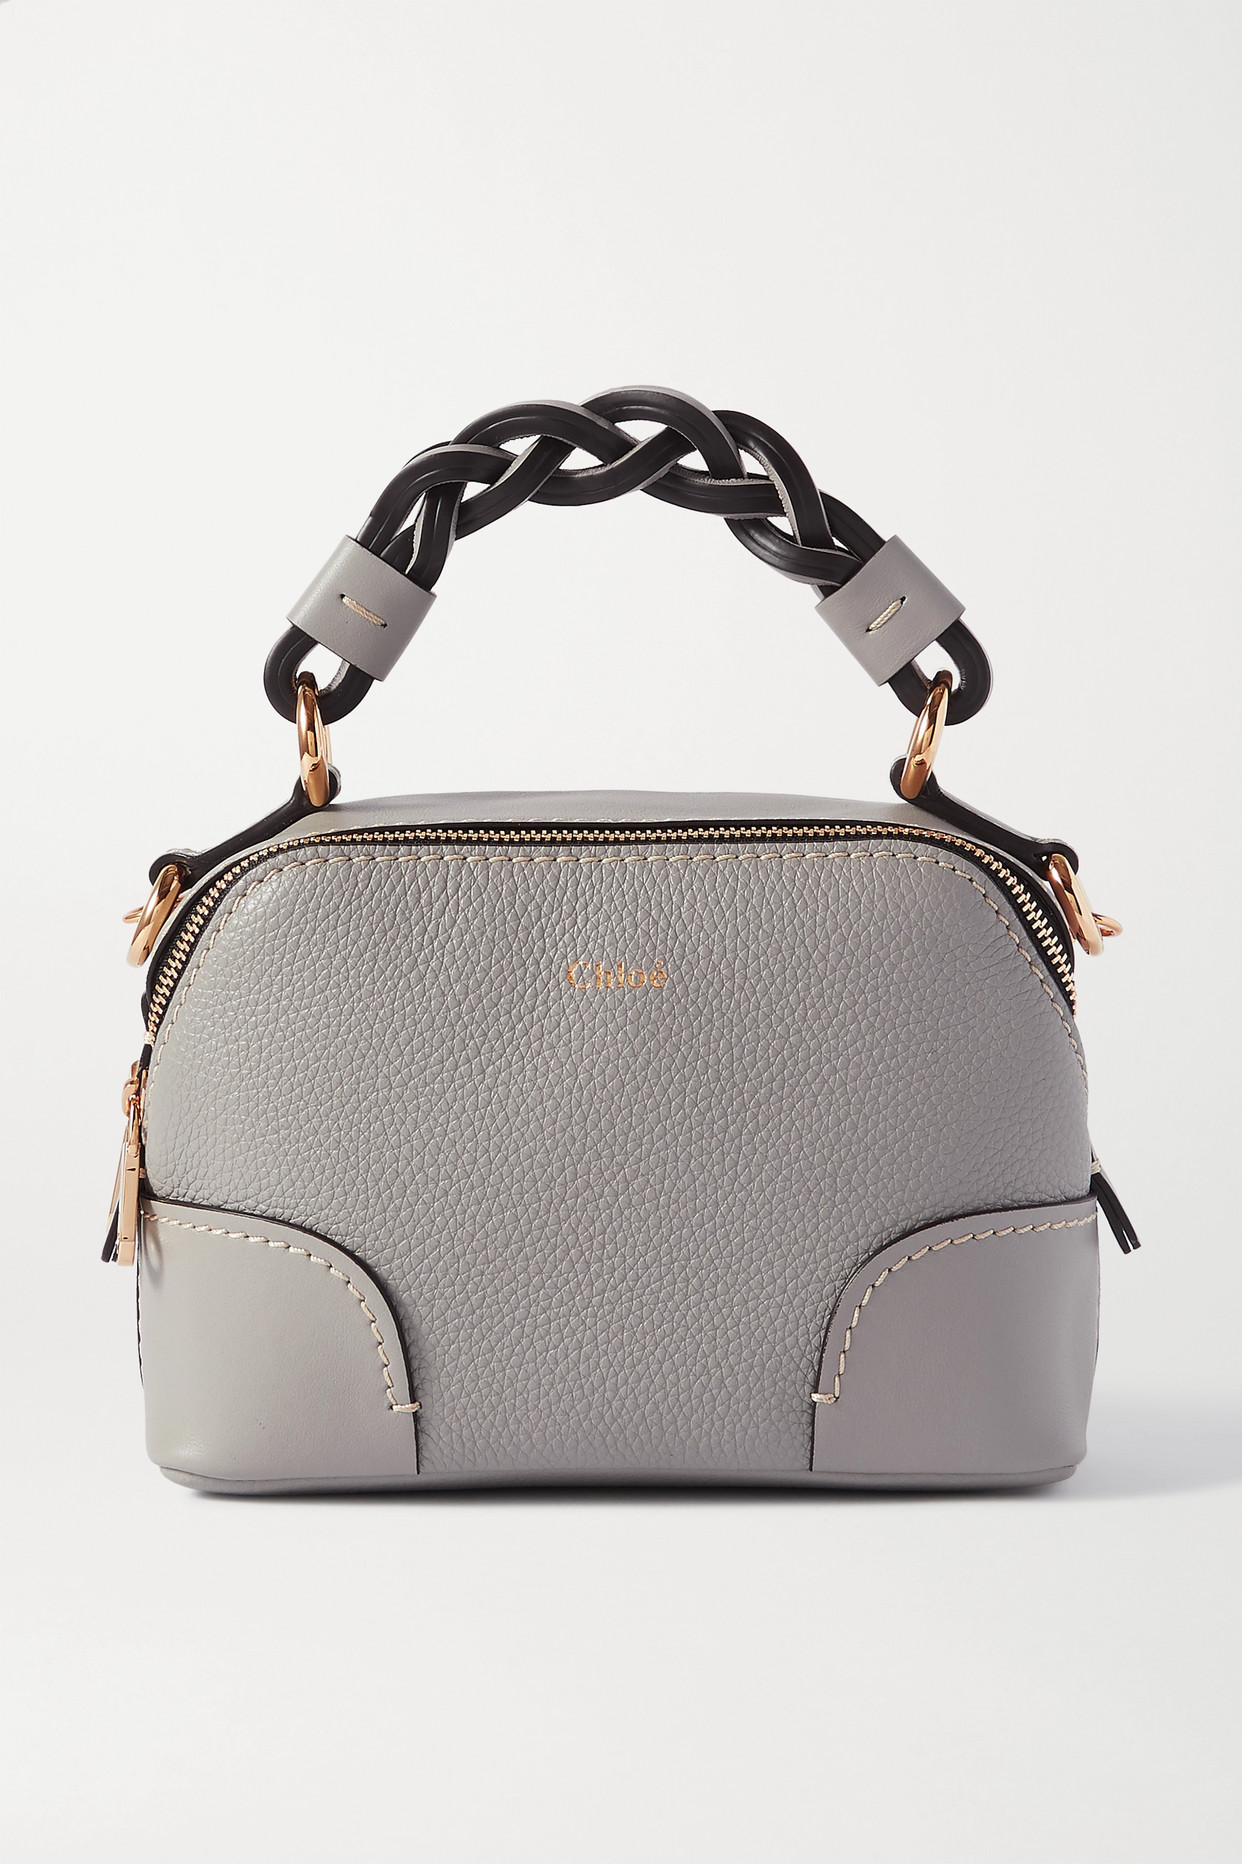 CHLOÉ - Daria Mini Textured And Smooth Leather Shoulder Bag - Gray - one size